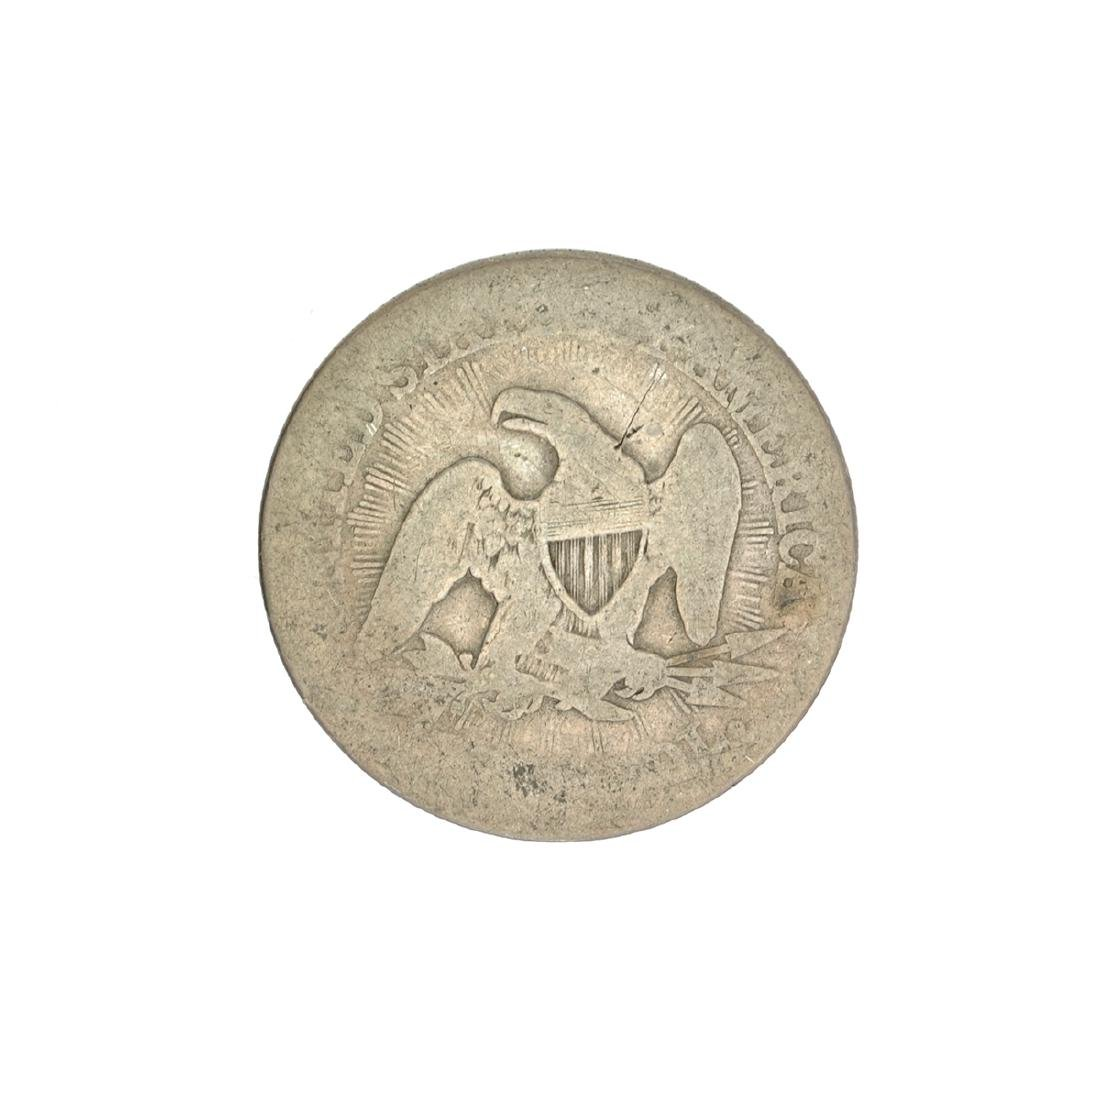 1853 Liberty Seated Arrows At Date Half Dollar Coin - 2